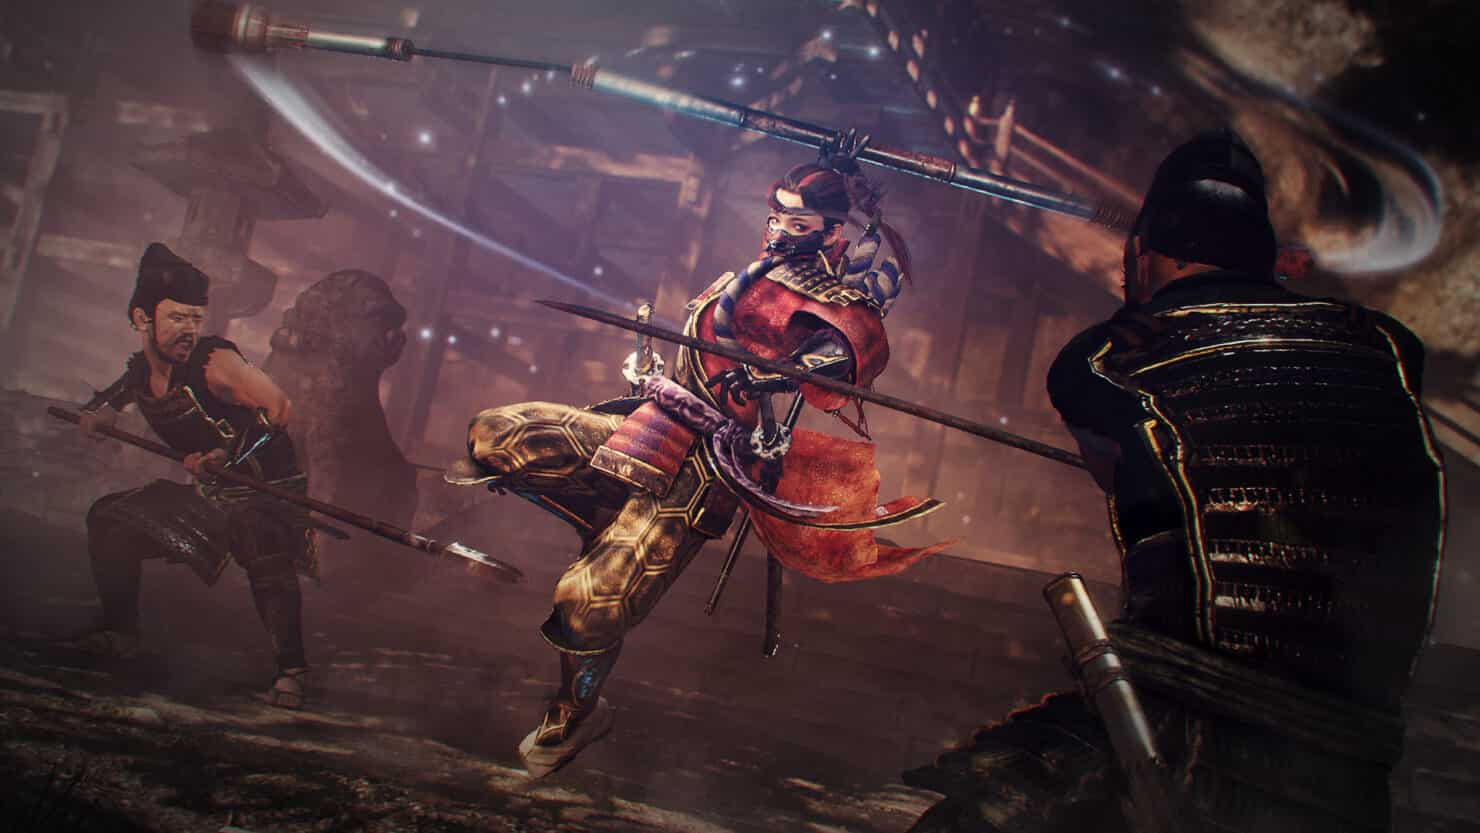 Nioh 2: Darkness in the Capital Review 02